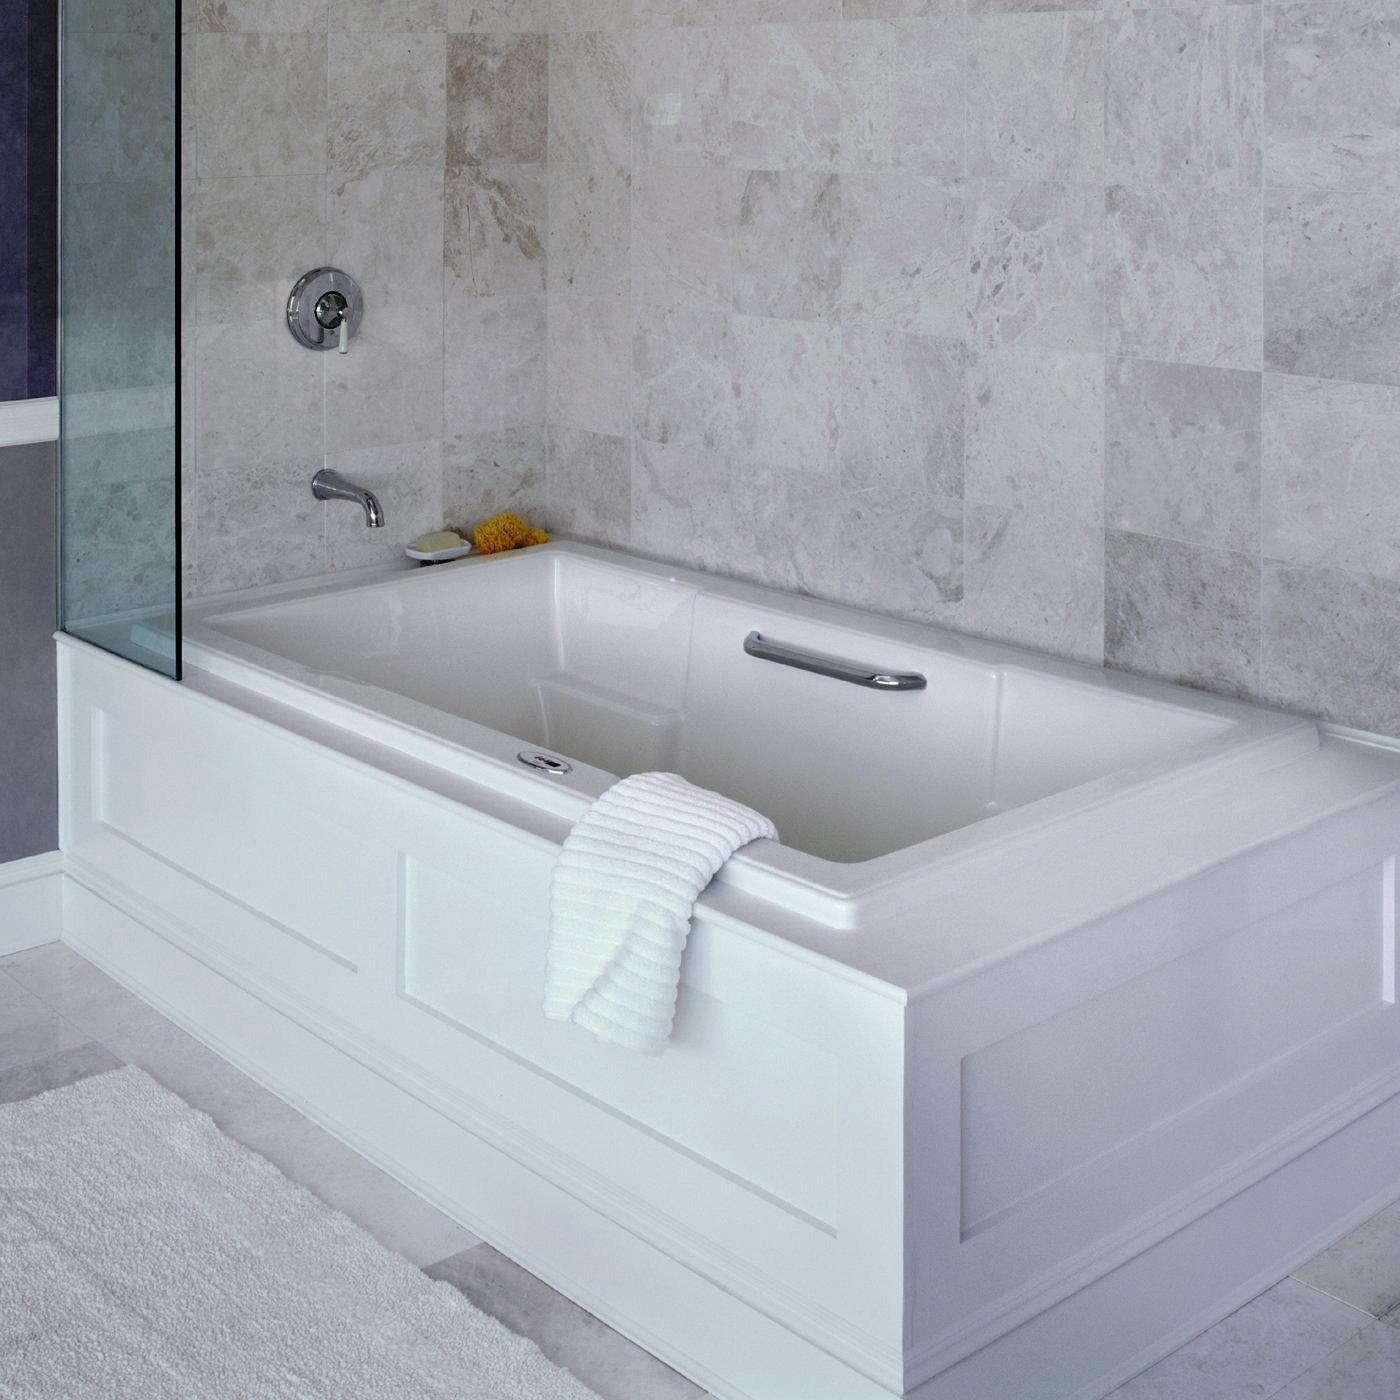 Bathtub Design Ideas Drop In Bathtub Design Ideas Schmidt Gallery Design